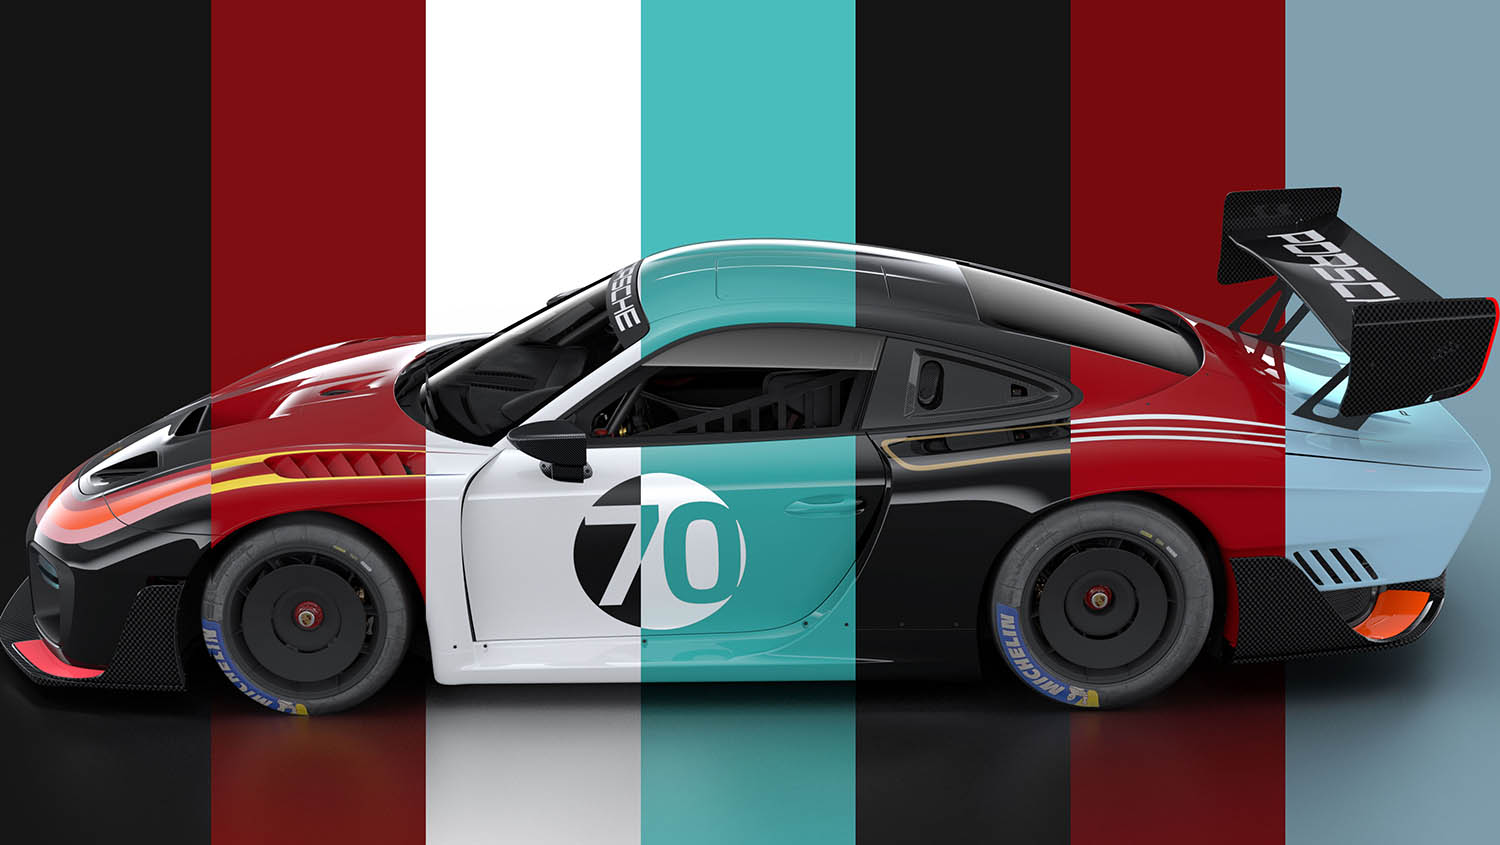 658538_porsche_935_seven_so_called_liveries_2019_porsche_ag.jpg